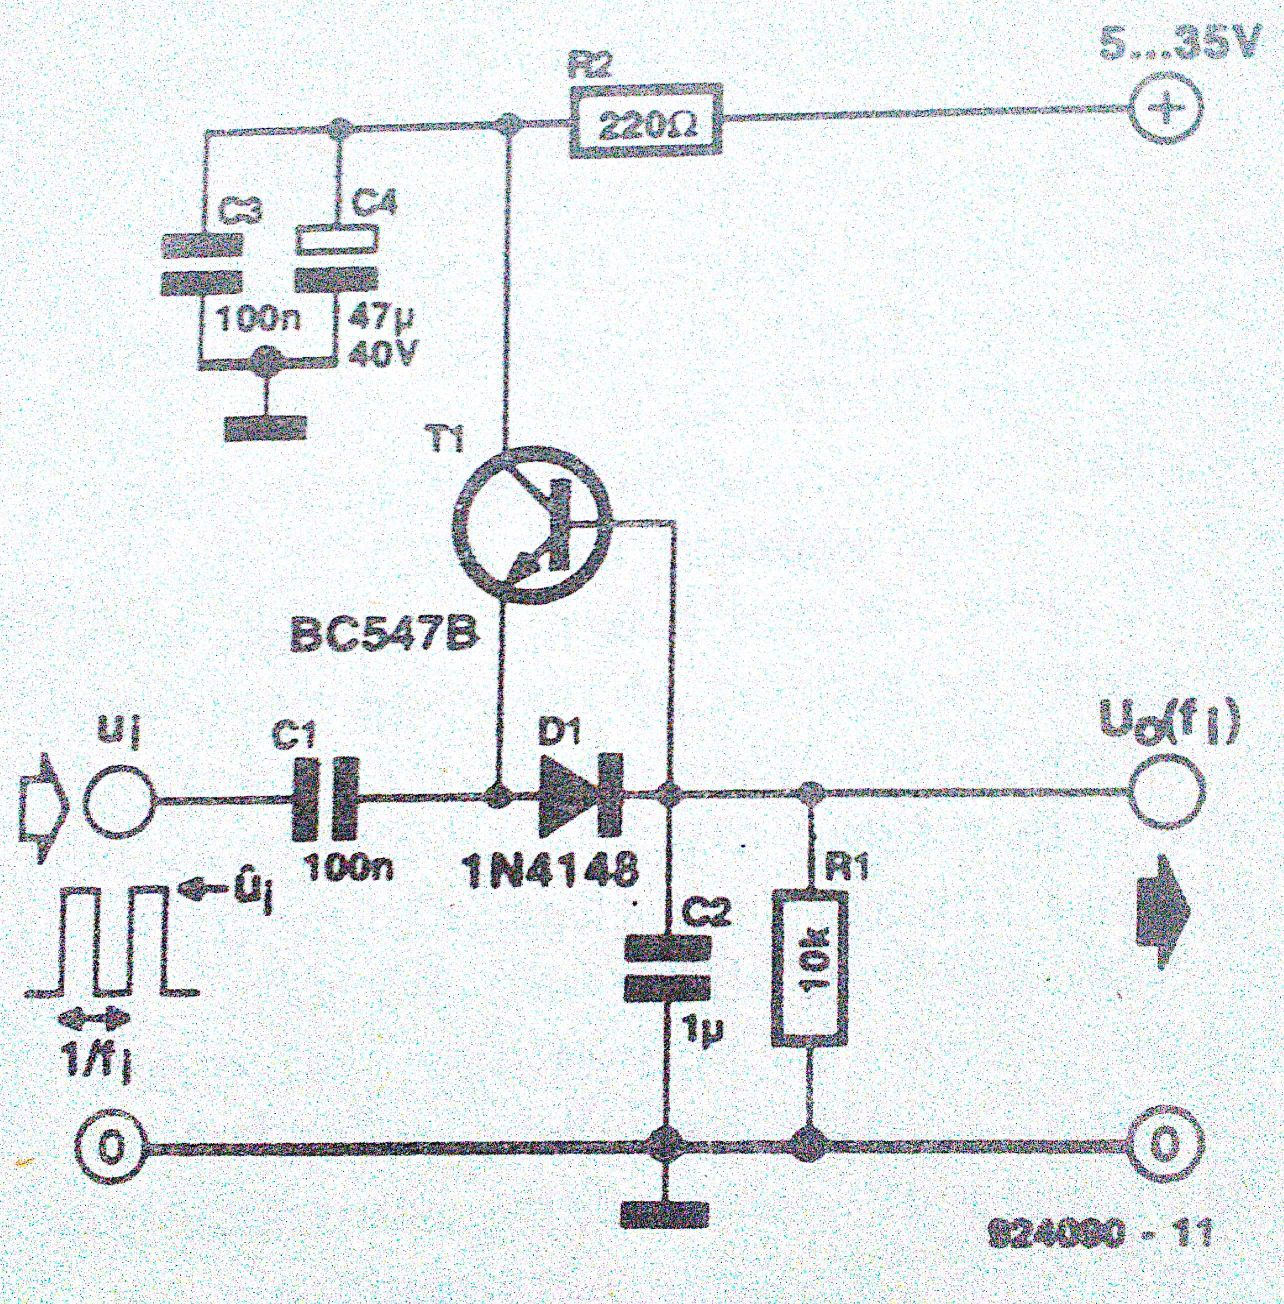 Discrete Frequency Voltage Converter Generator Circuit 555 Tone The Transfer Function Of